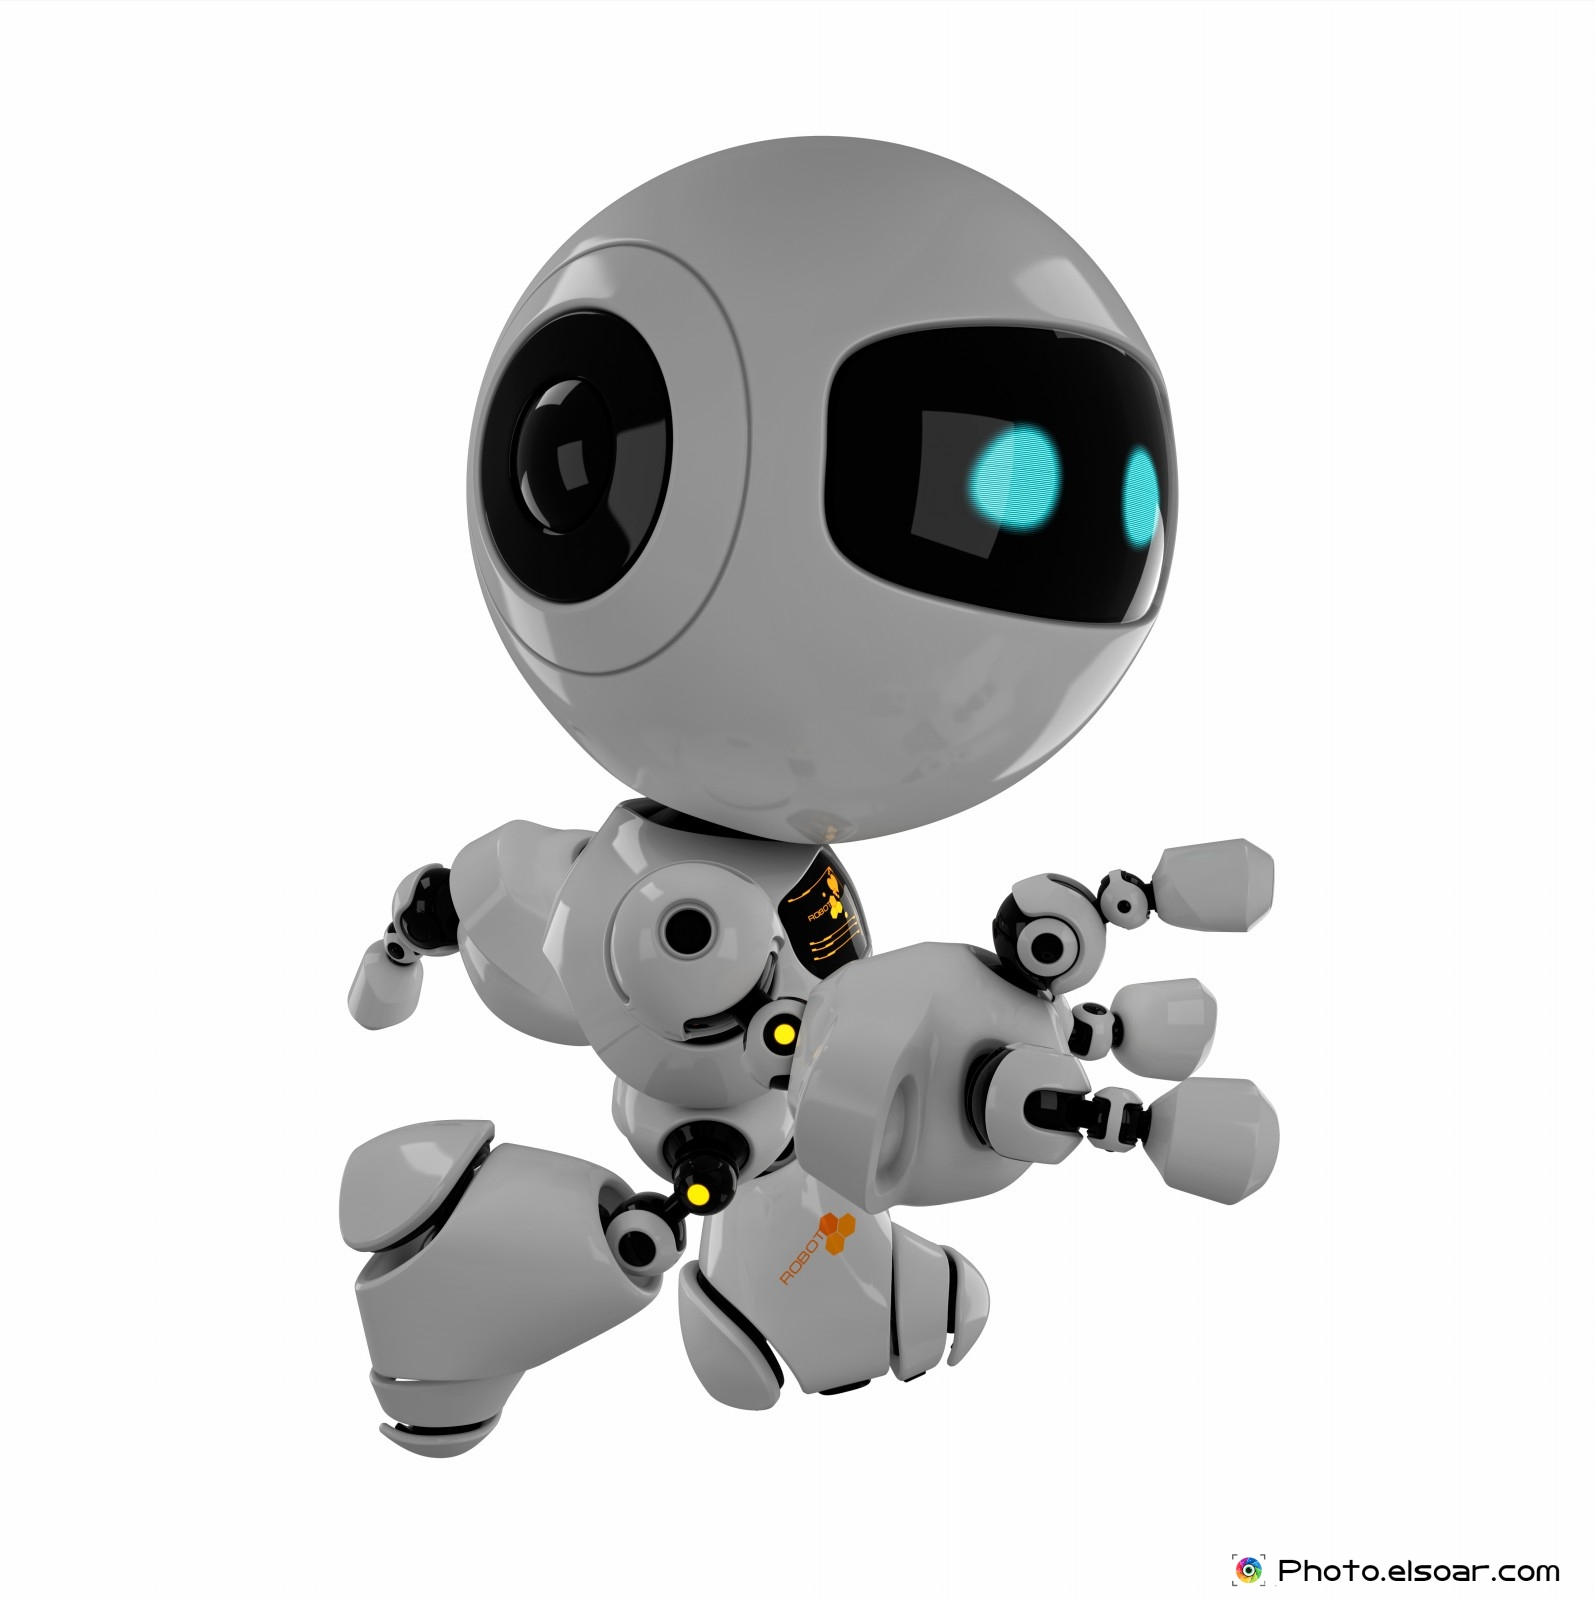 Cute Robot Love Wallpaper Cute Robot Wallpaper -...